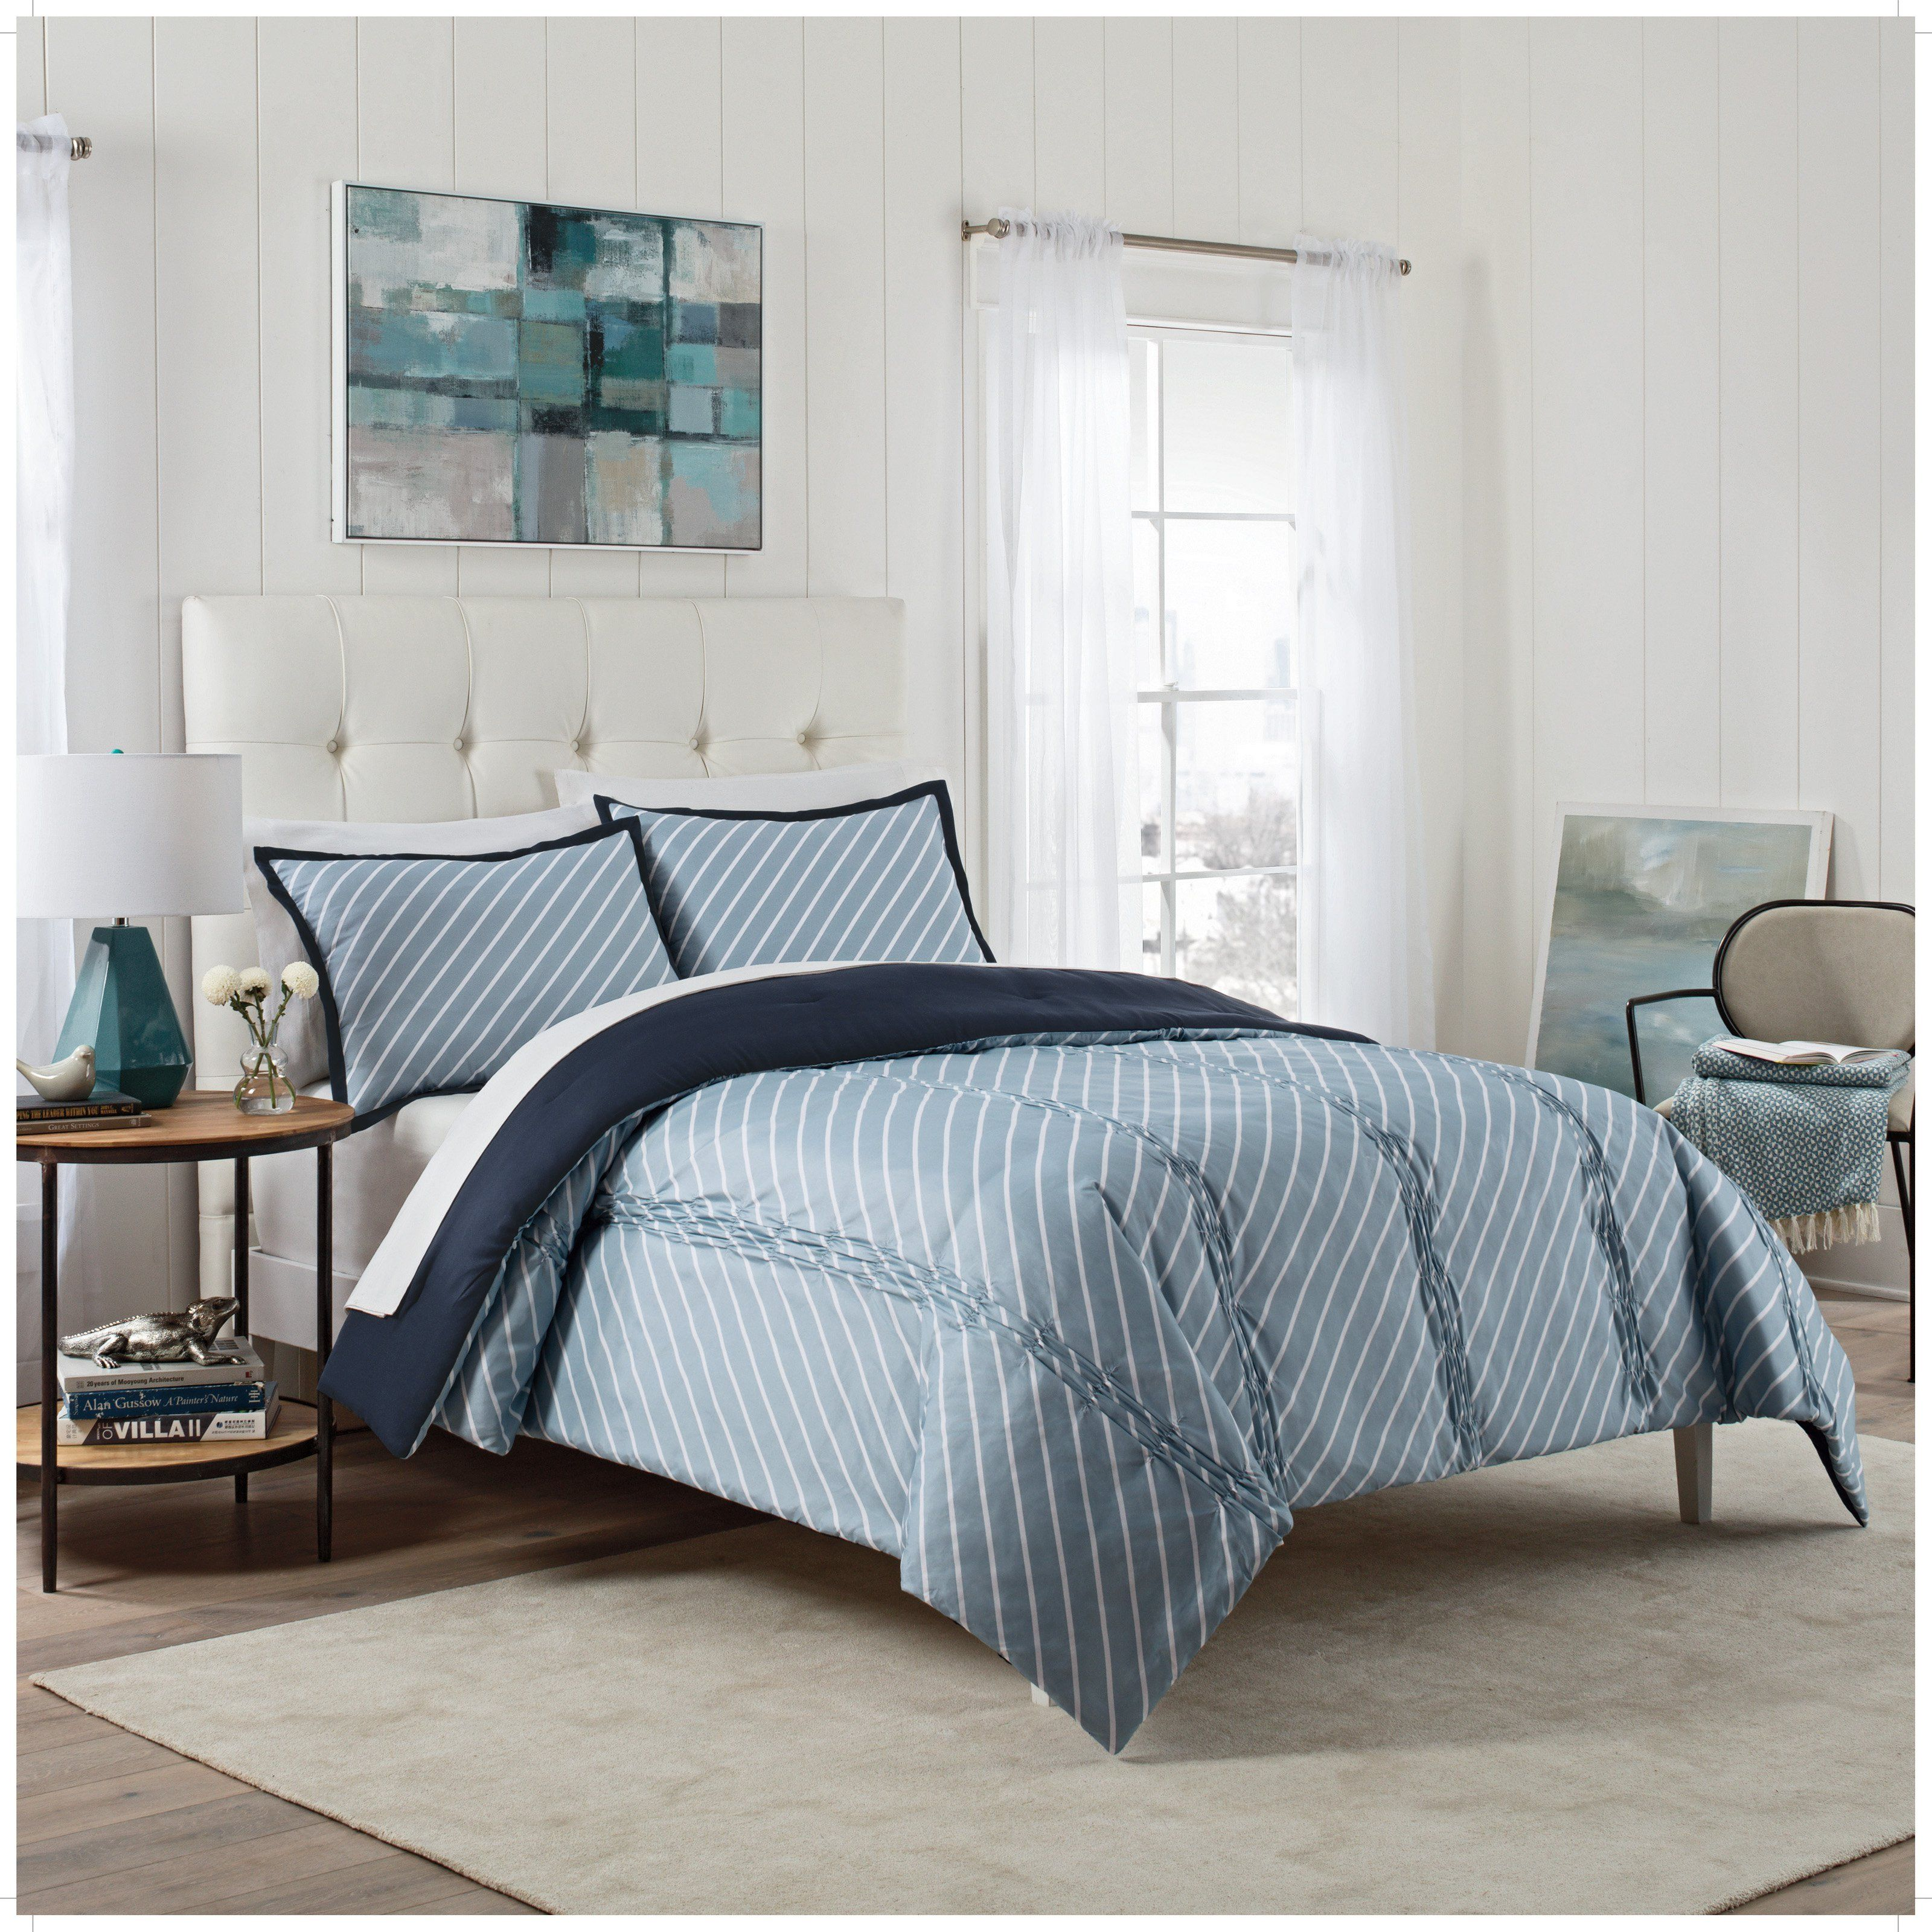 aj by vue moss bedding pin twilight pinterest contemporary bed